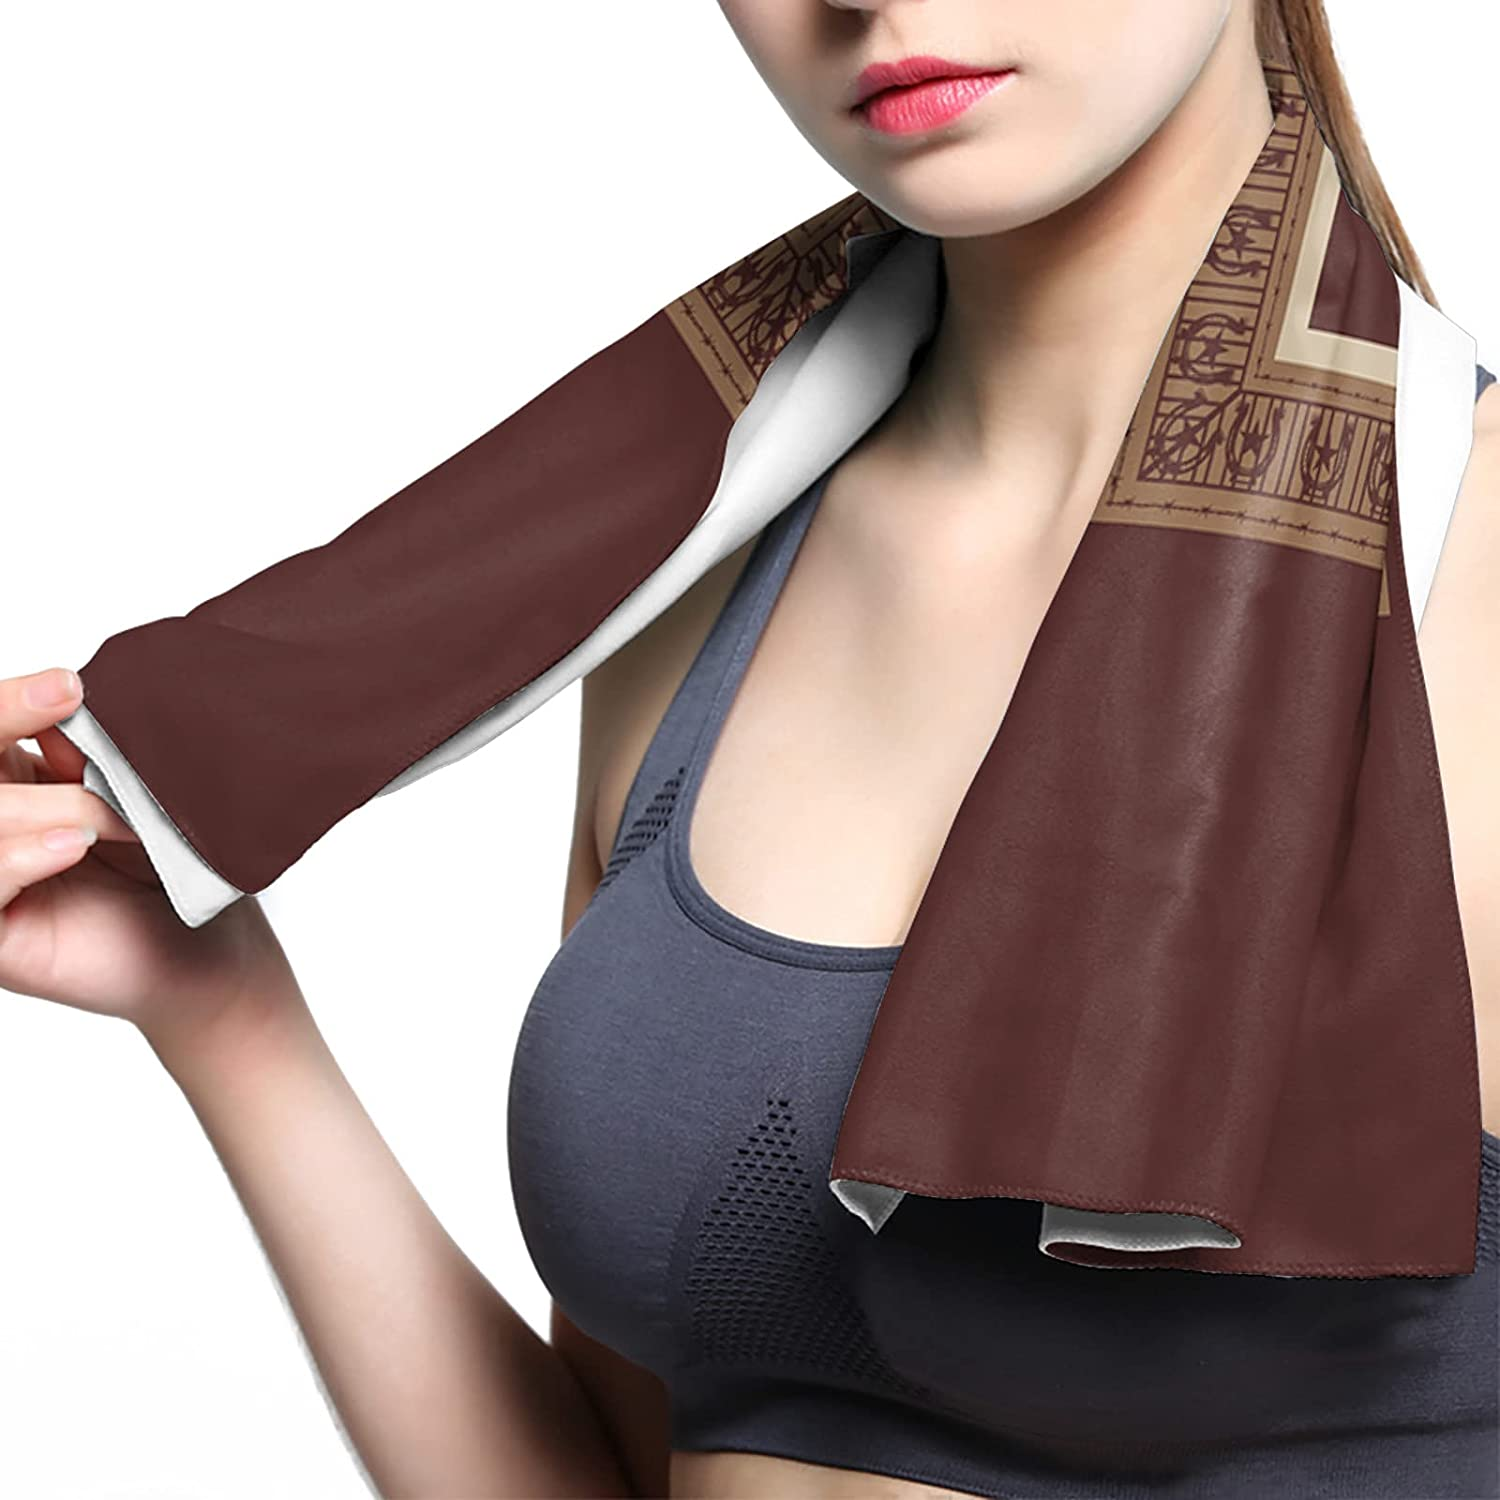 ArneCase Cooling Towel Breathable Chilly Towels Our Free shipping / New shop most popular Microfiber Weste